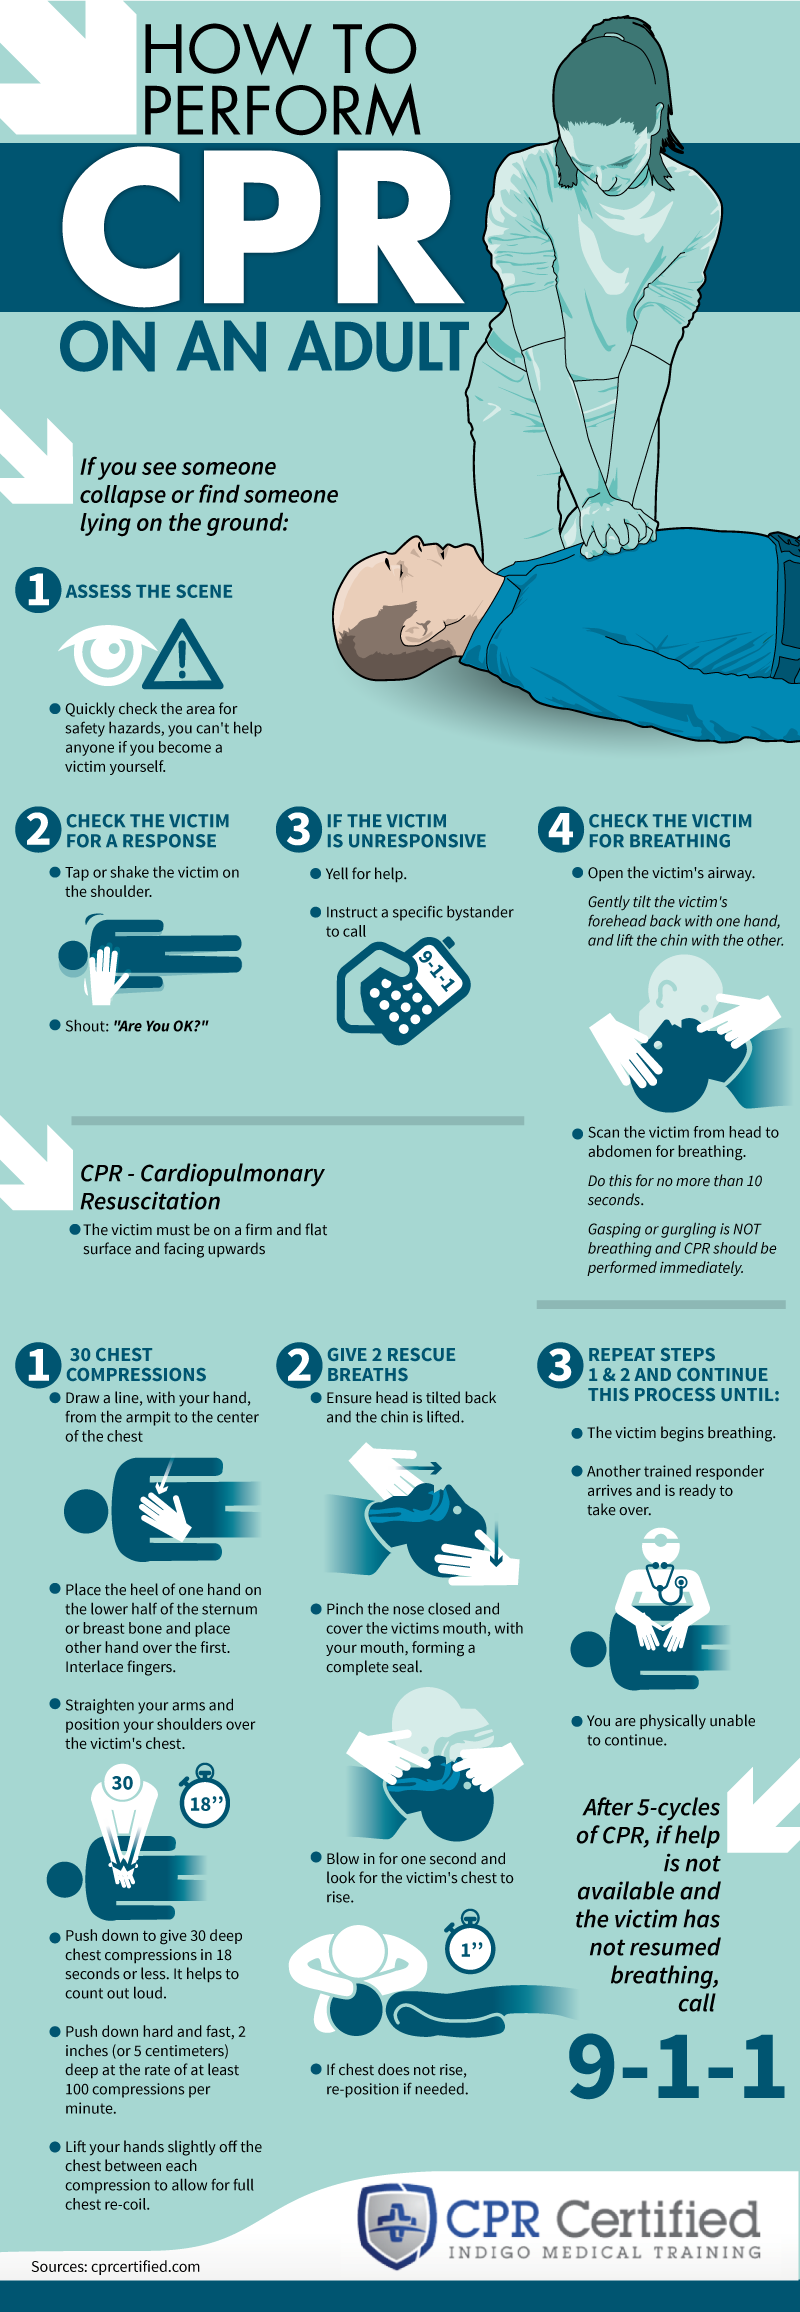 Infographic: How to Perform CPR on an Adult